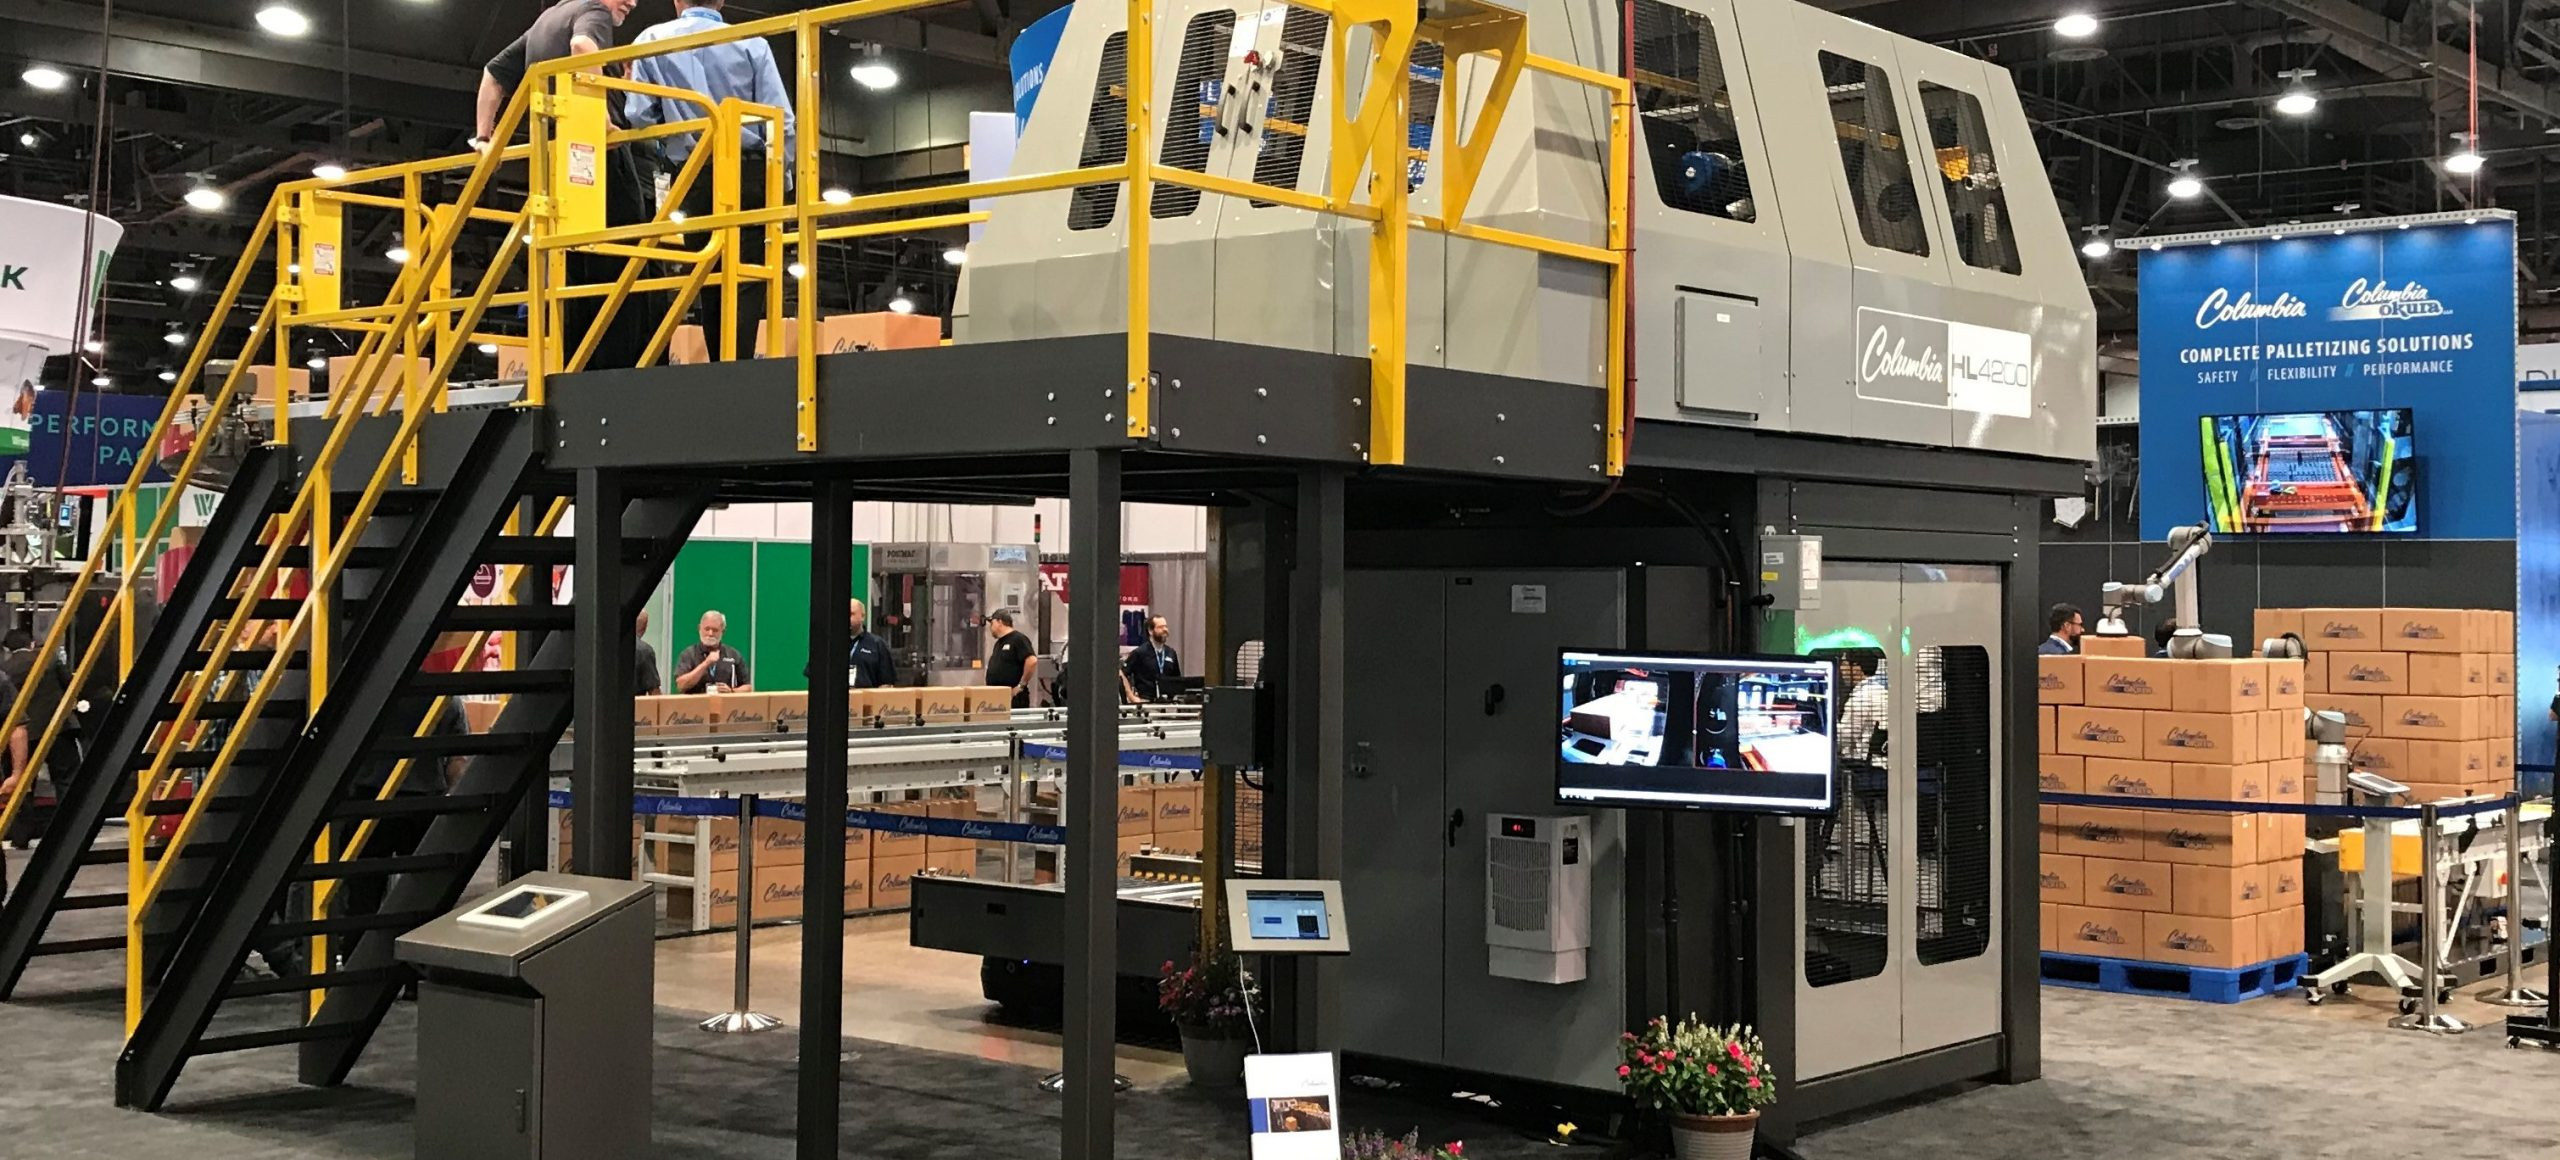 Image of a HL4200 High Level Palletizer at Pack Expo Las Vegas 2019